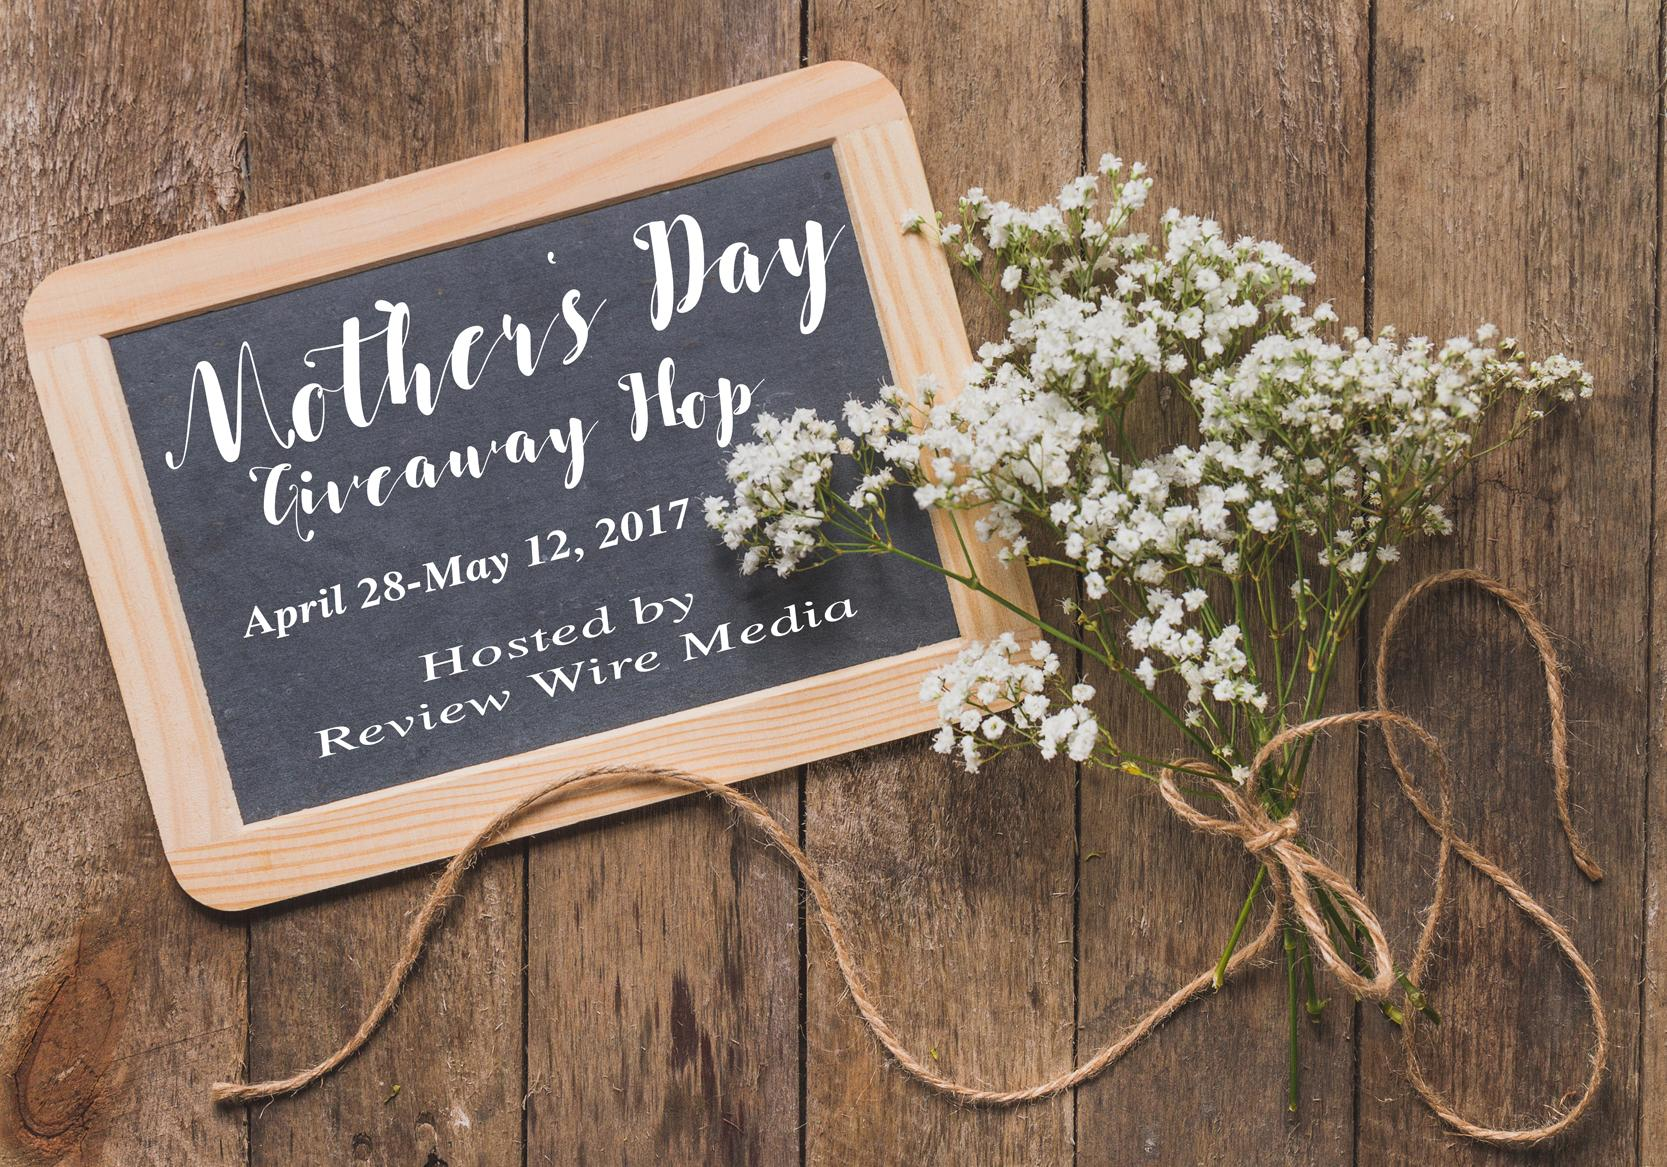 Mother's Day Hop April 28-12